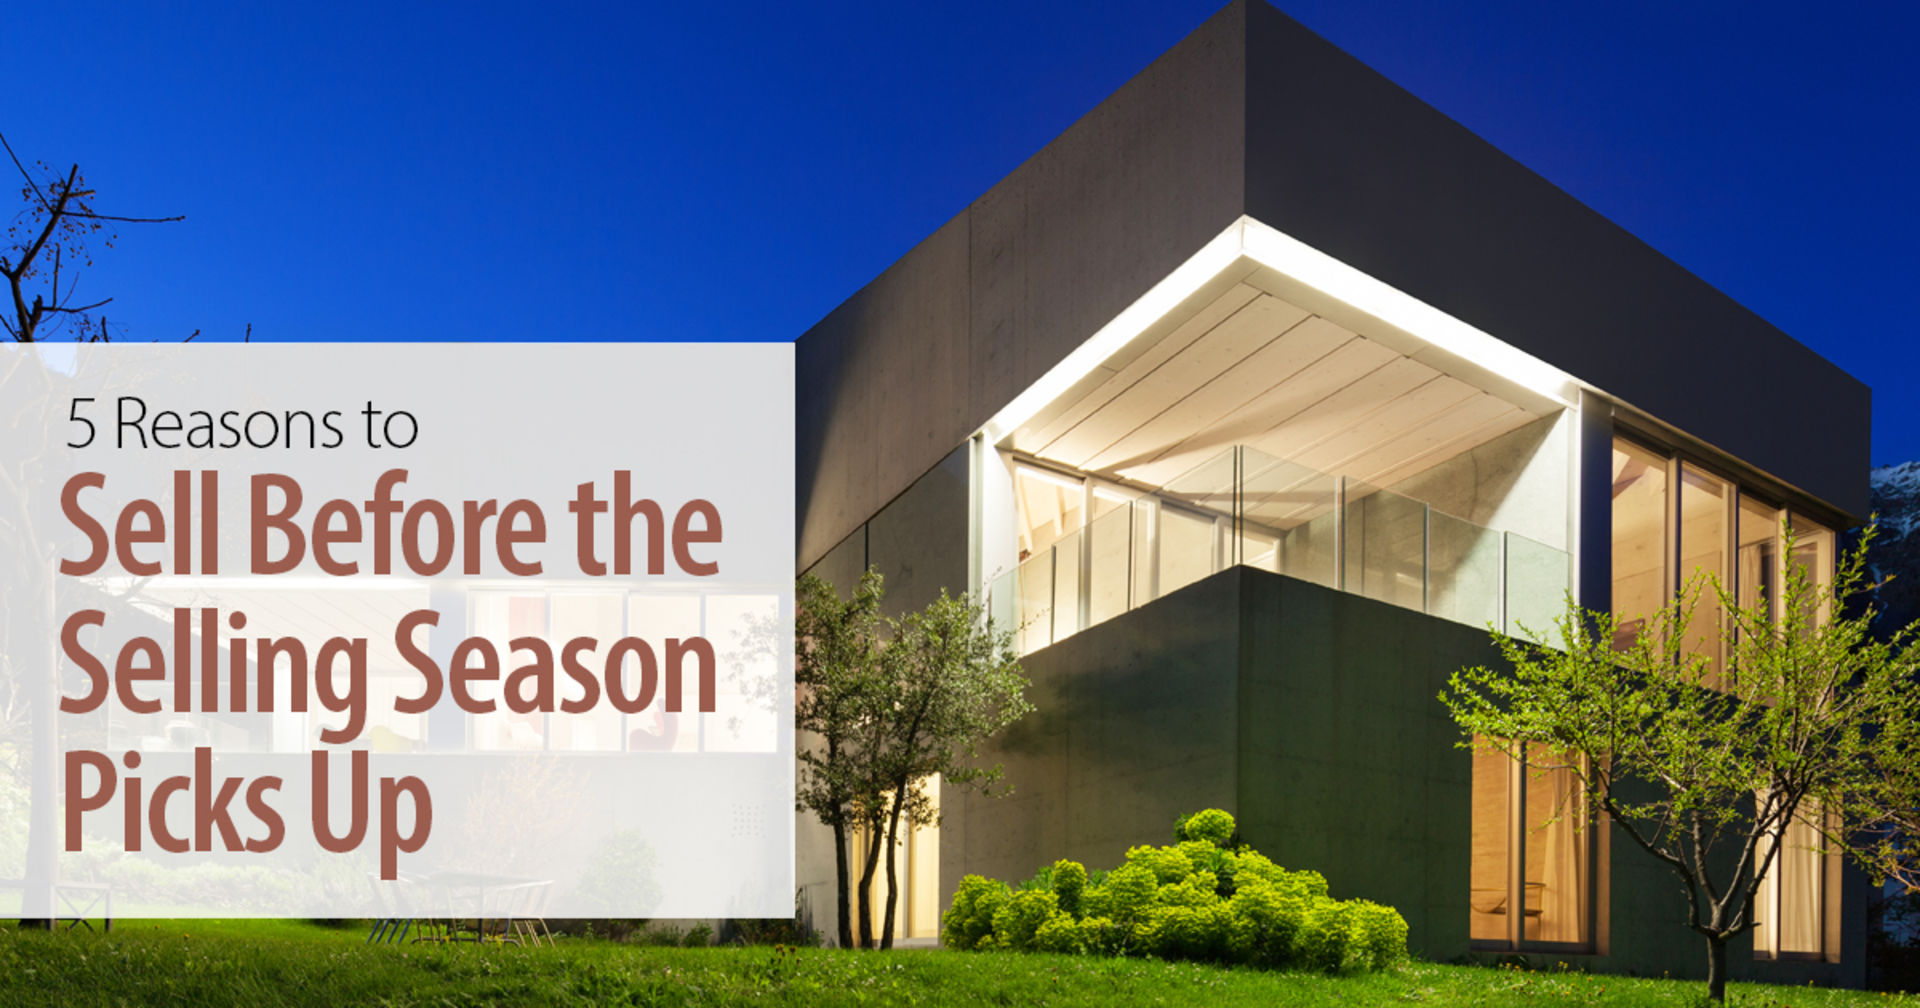 5 Reasons to Sell Before the Selling Season Starts